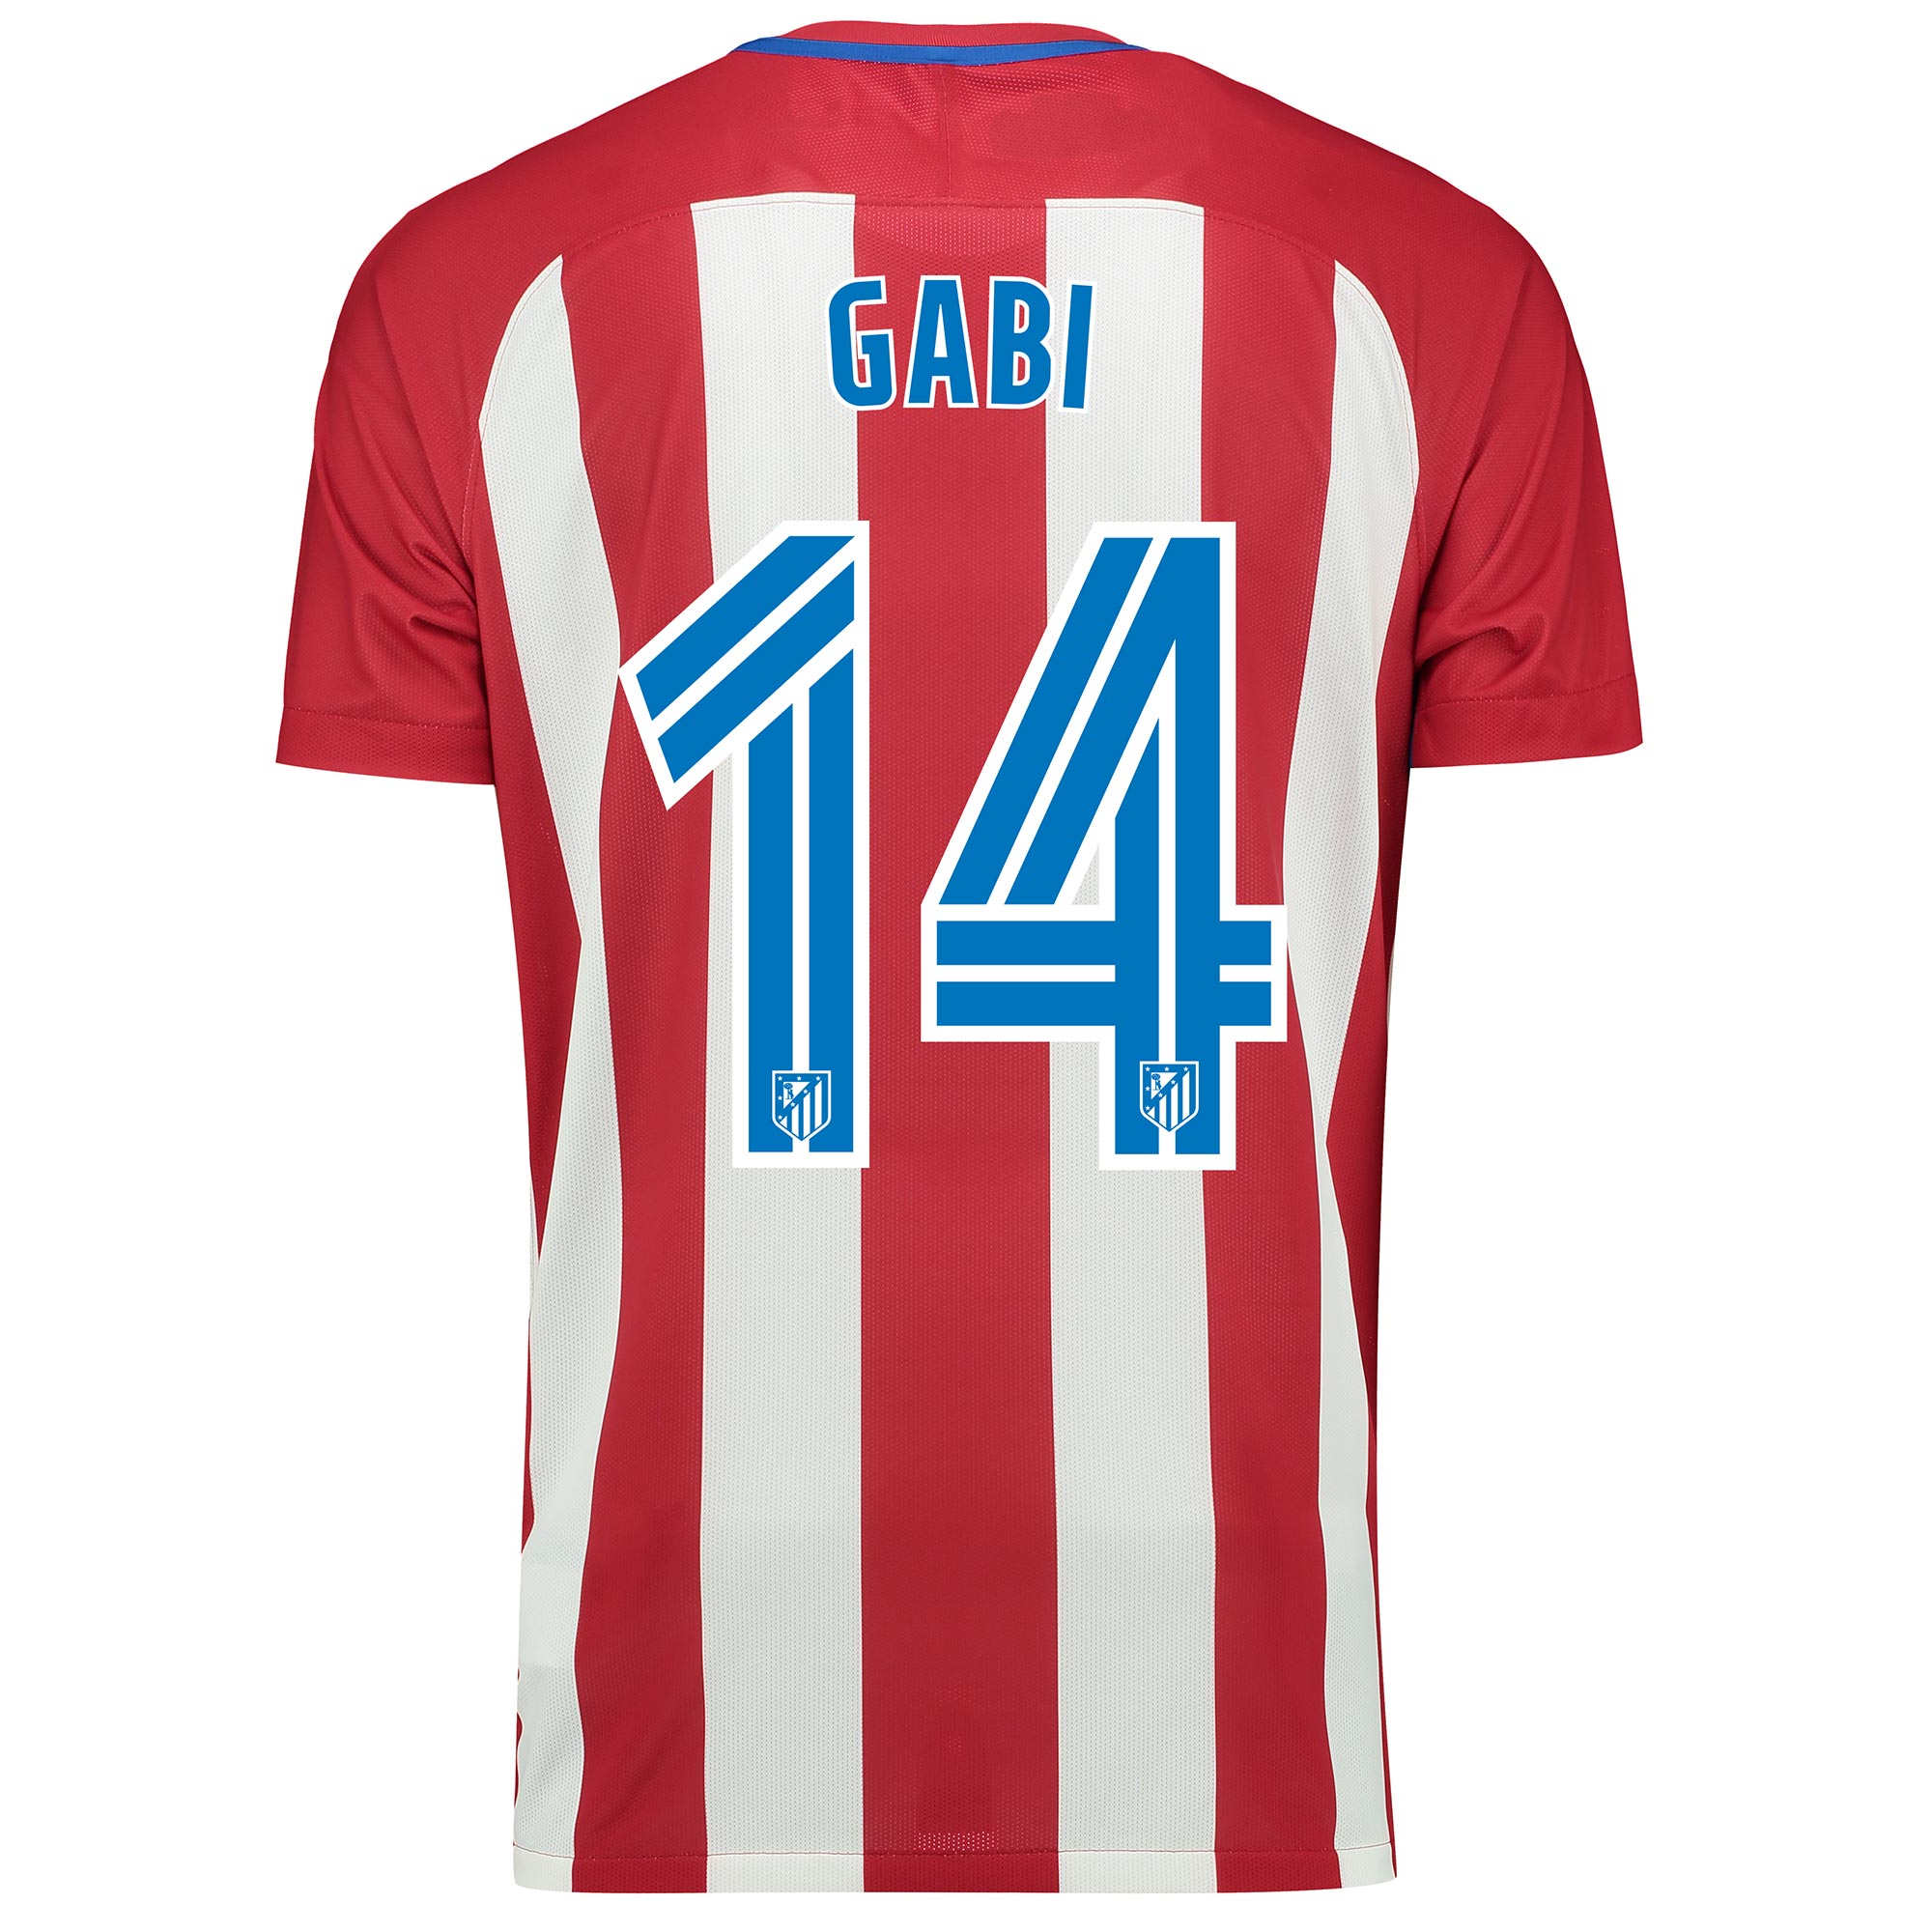 Image of Atletico Madrid Home Match Shirt 2016-17 with Gabi 14 printing, Red/White